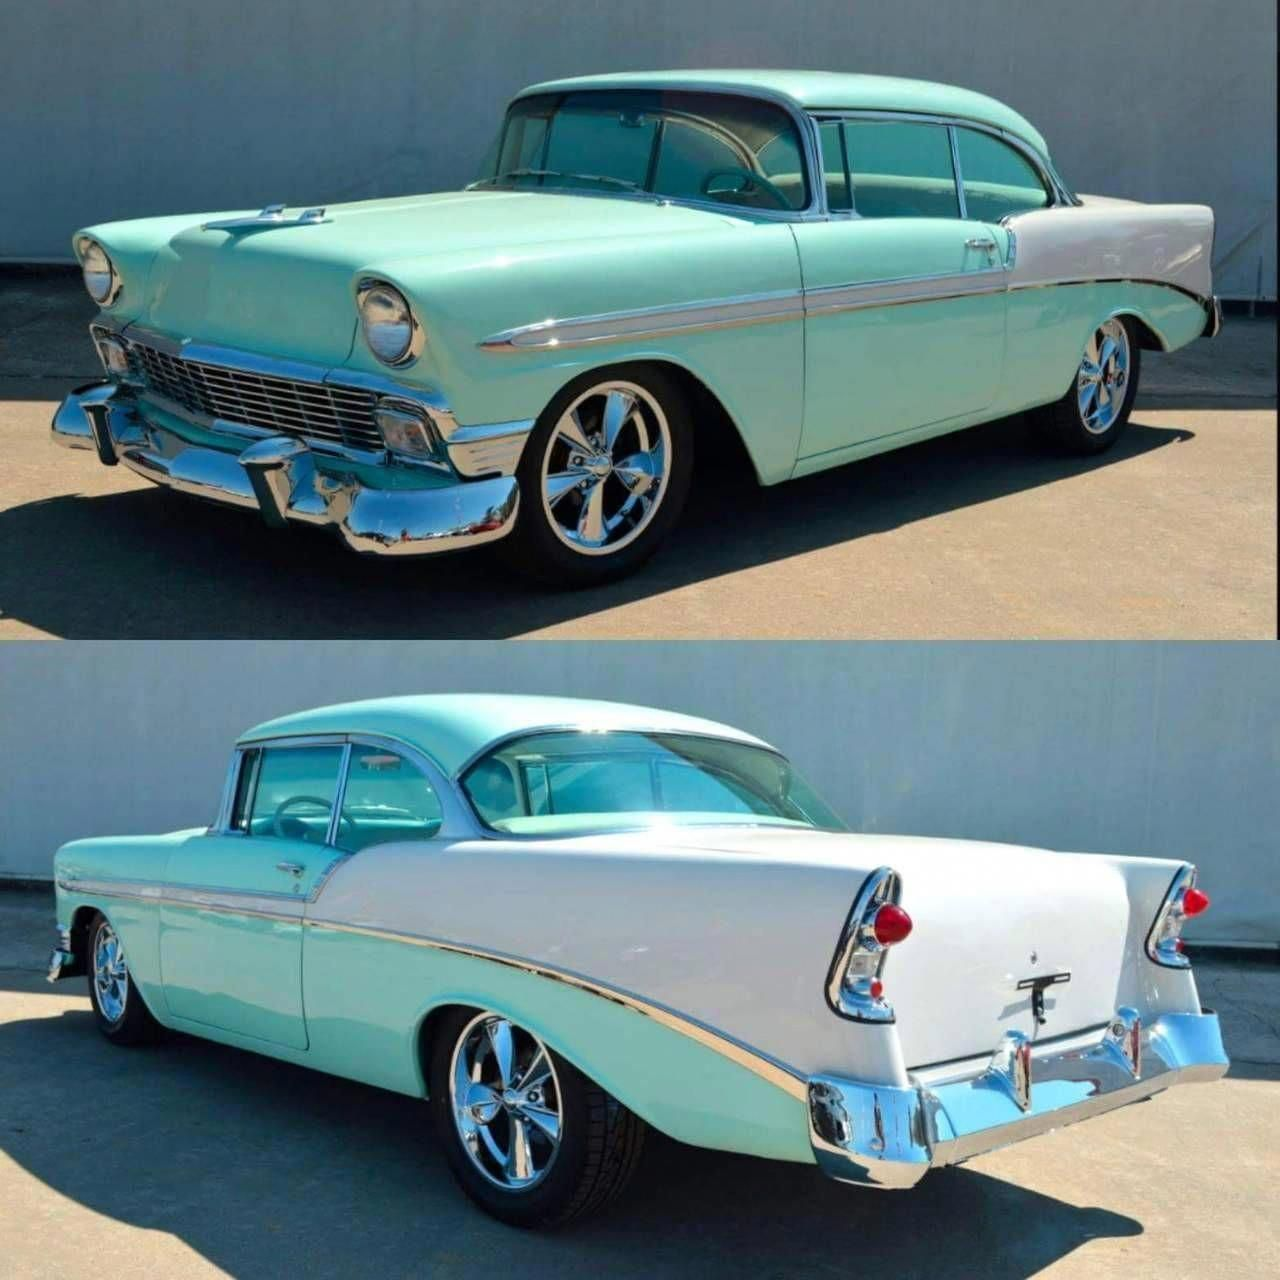 Classic Cars And Women 1956 Chevrolet Belair Chevroletvintagecars Vintage Cars 1950s Classic Chevy Trucks Classic Cars